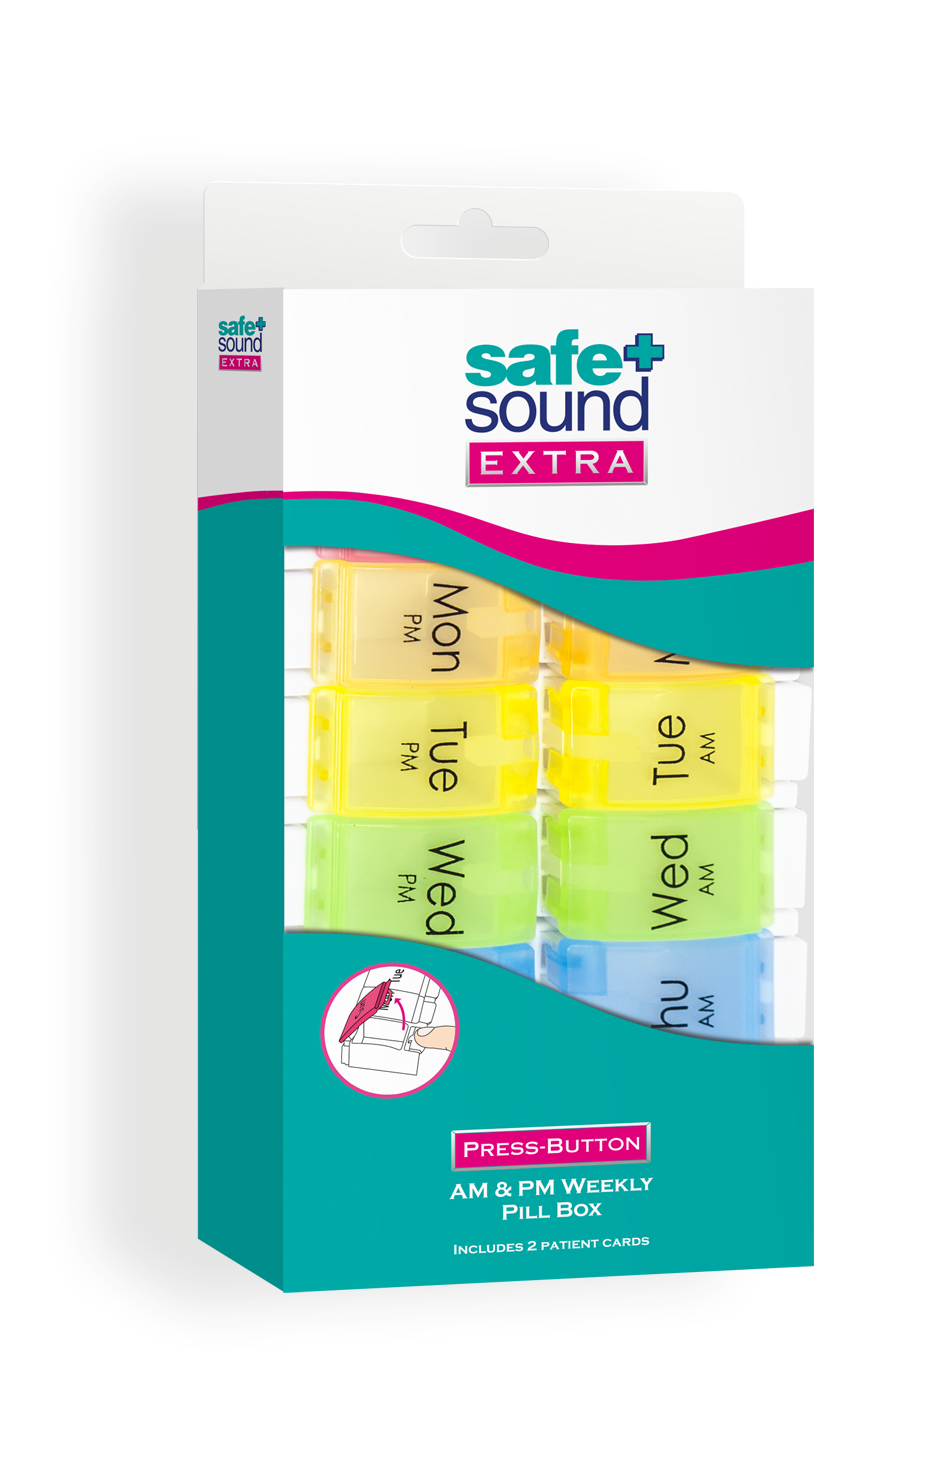 Safe and Sound Health AM & PM Weekly Press Button Pillbox